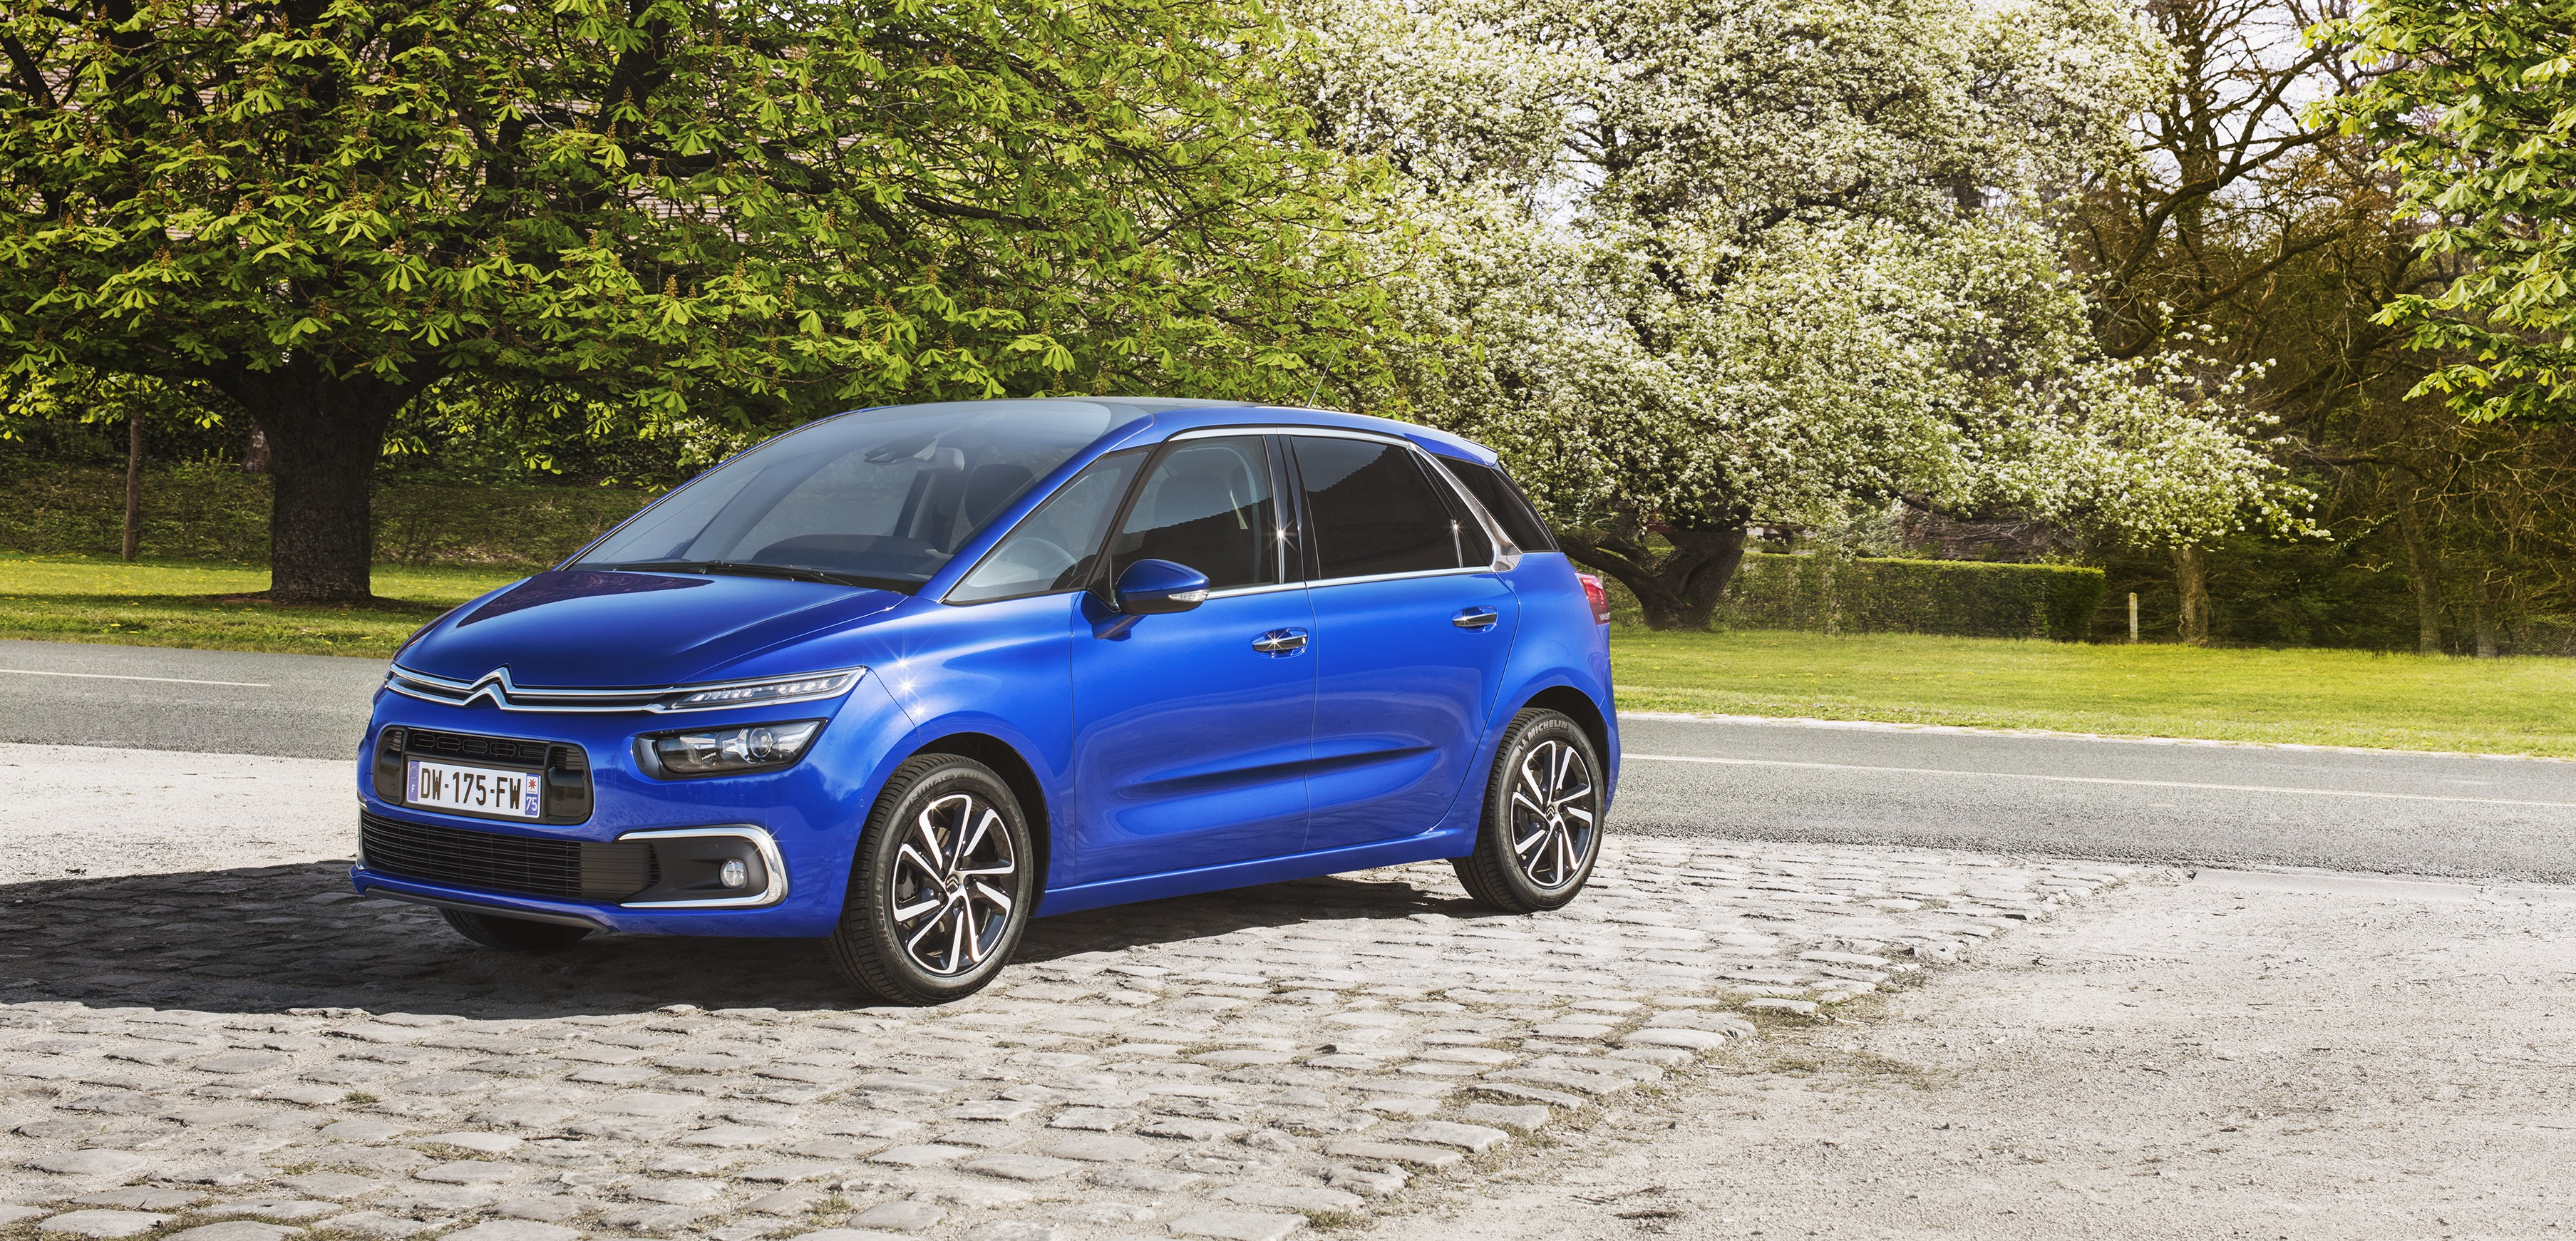 citroen replaces c4 picasso with c4 spacetourer nothing else has changed autoevolution. Black Bedroom Furniture Sets. Home Design Ideas